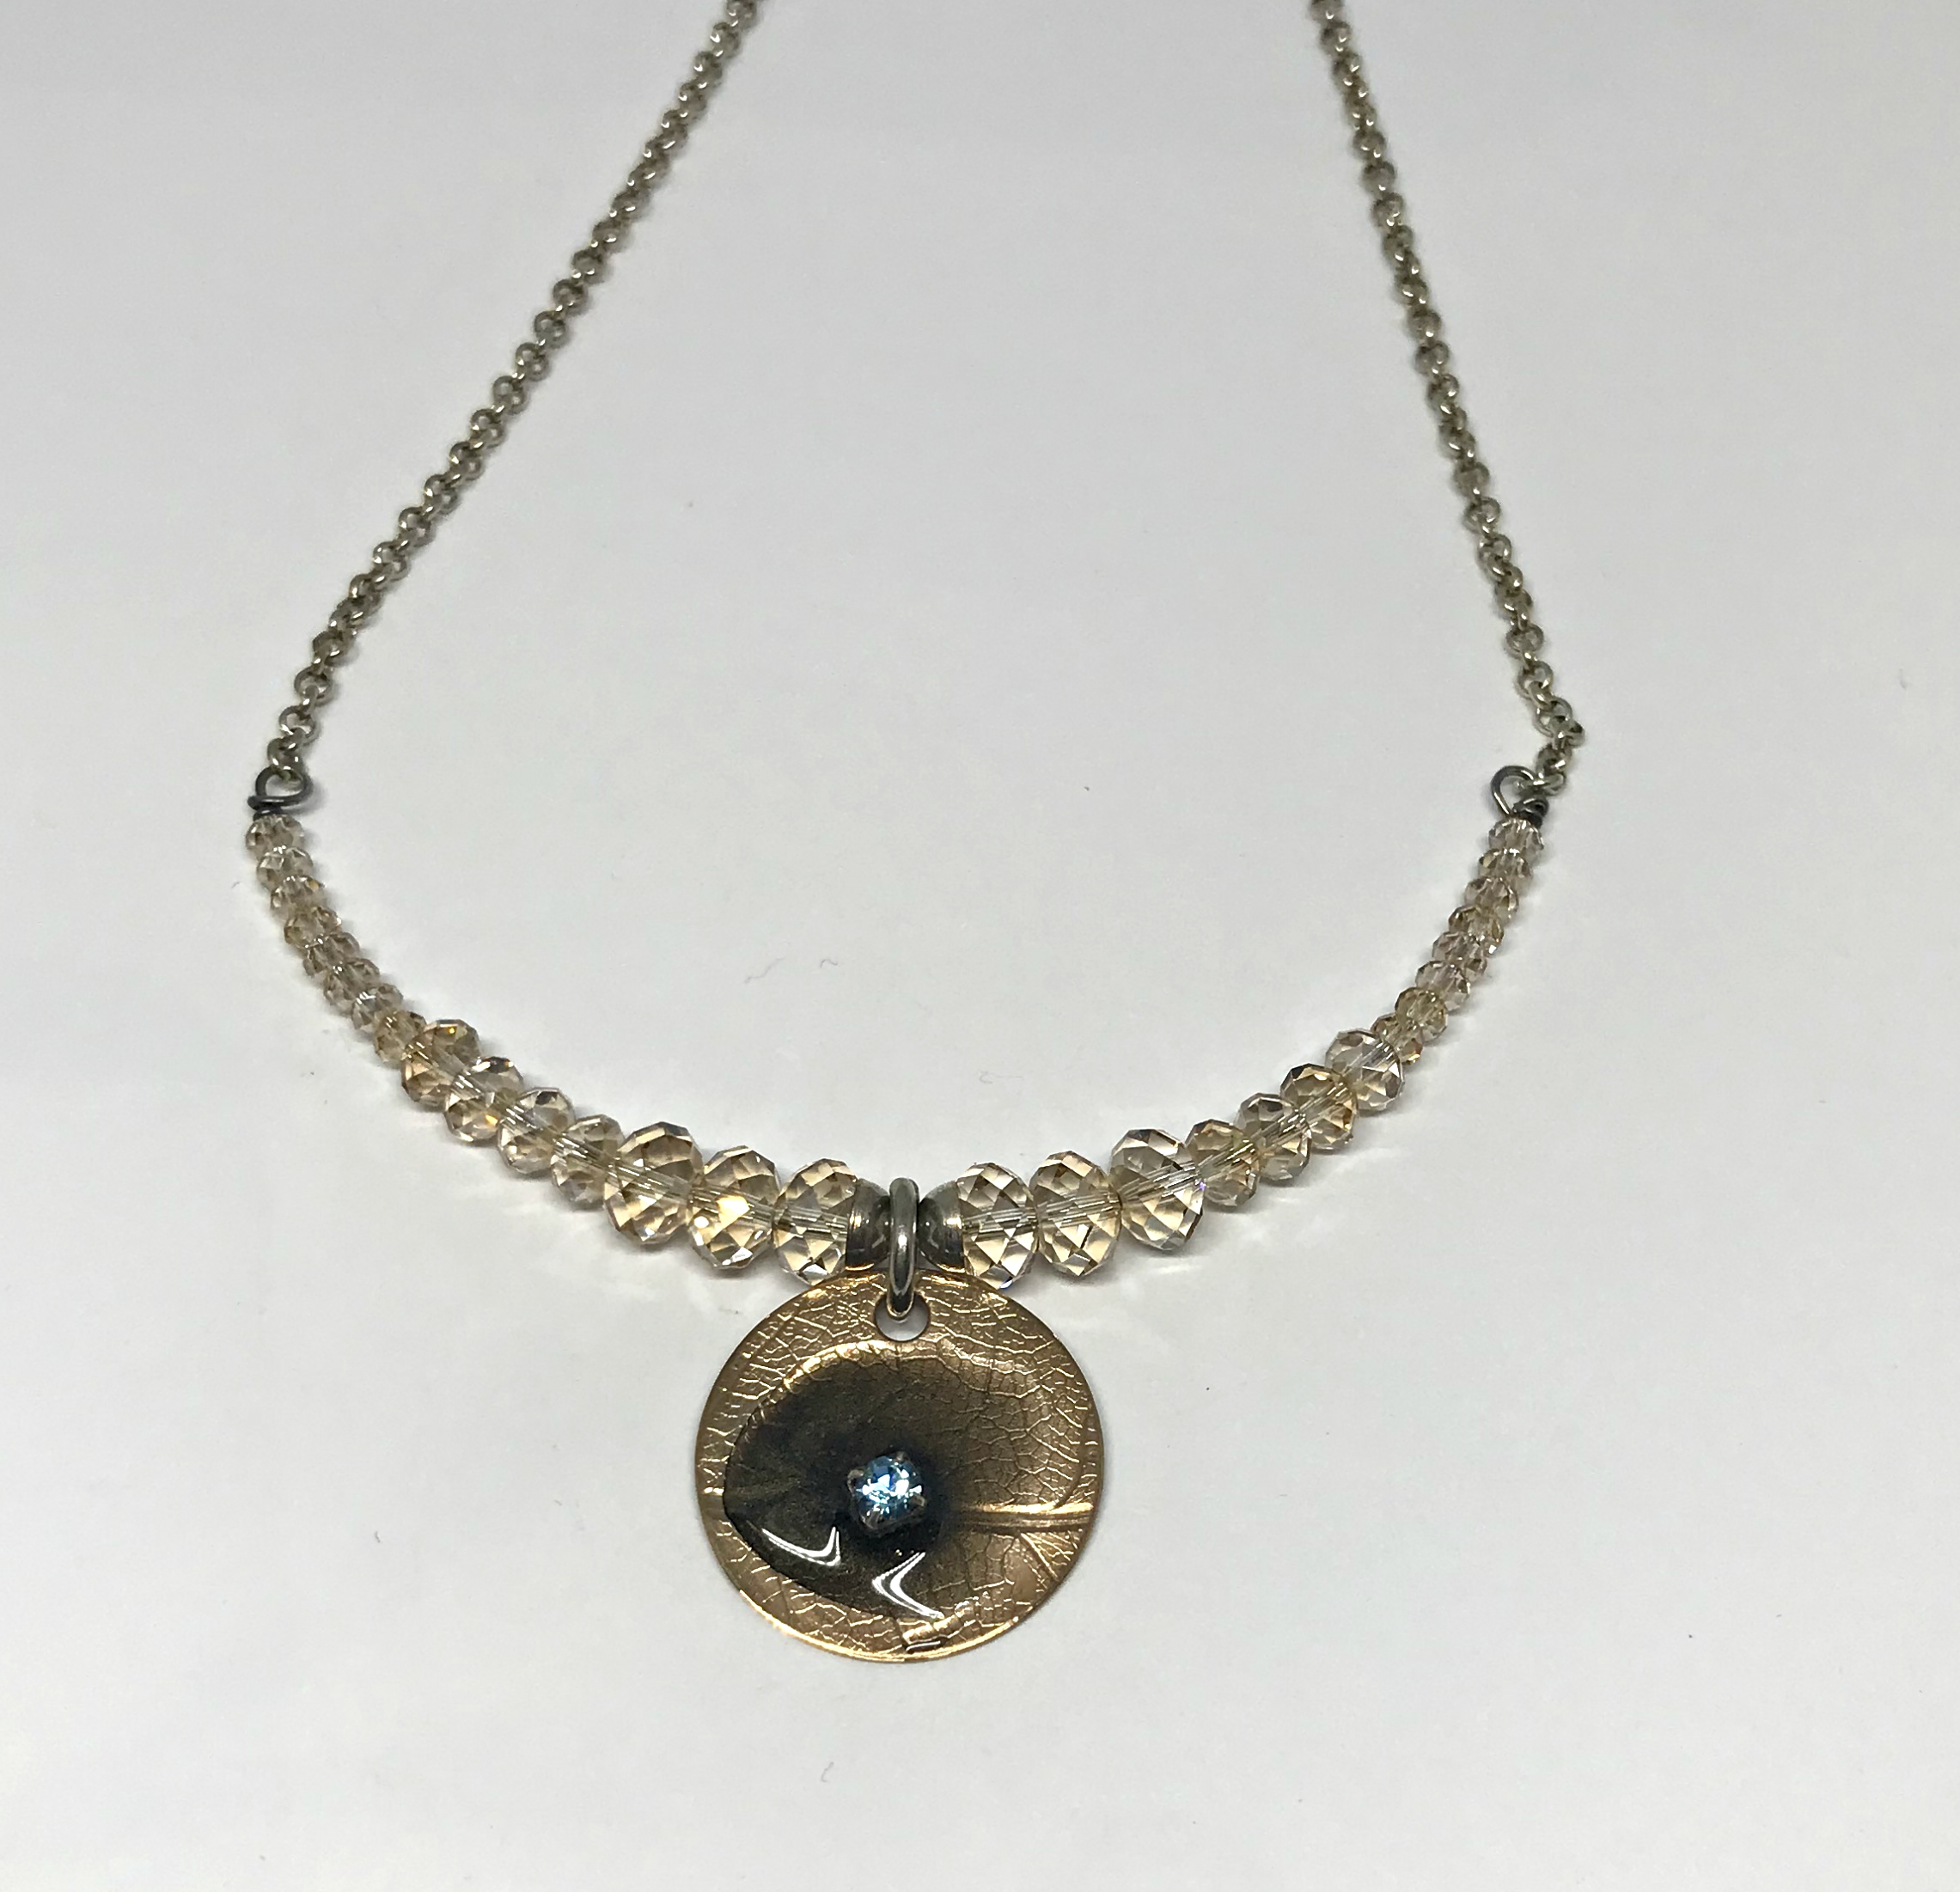 Golden Shadow Necklace by Karyn Chopik   Effusion Art Gallery + Cast Glass Studio, Invermere BC